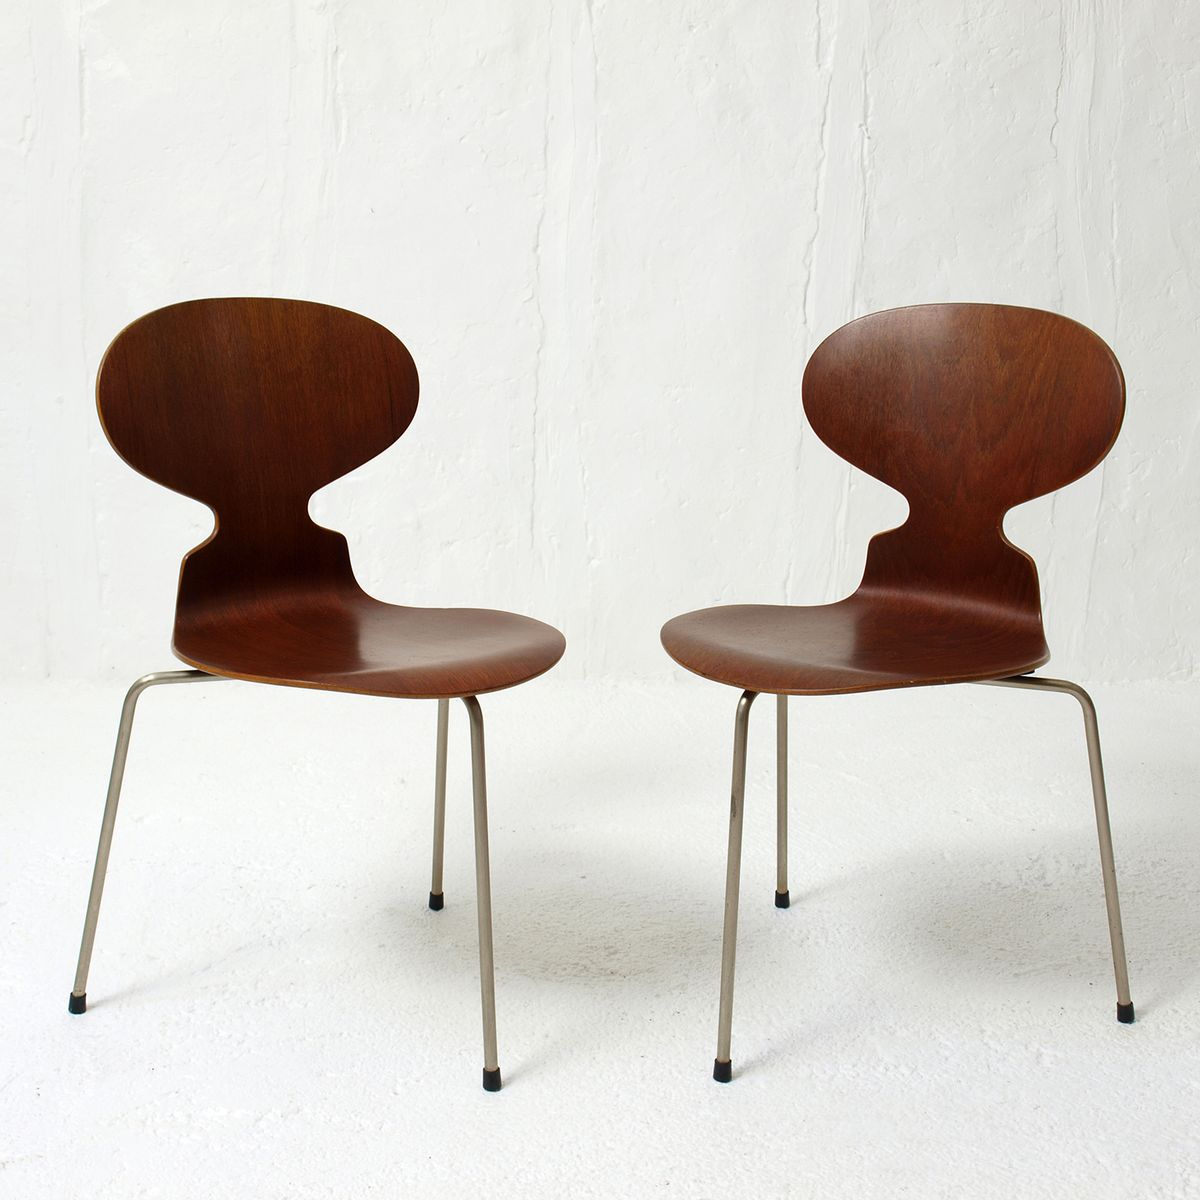 mid century 3100 ant chairs by arne jacobsen for fritz hansen set of 2 for sale at pamono. Black Bedroom Furniture Sets. Home Design Ideas